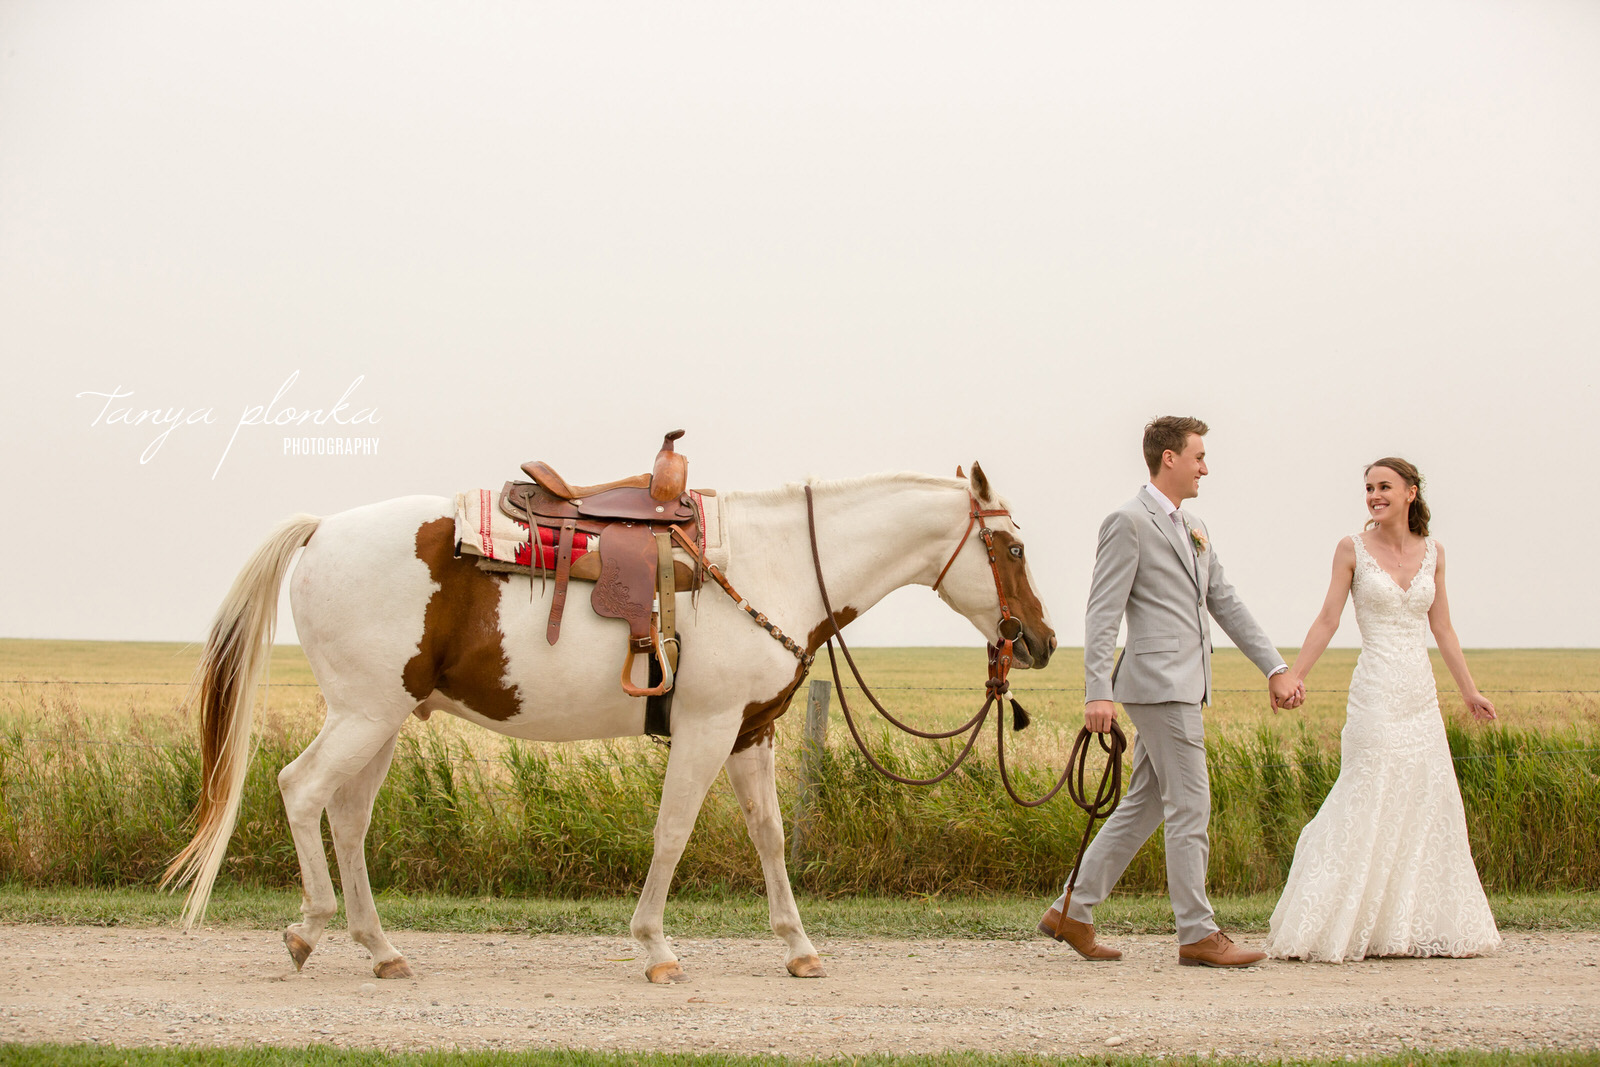 Bride and groom walk while holding hands and leading a horse on a dirt road